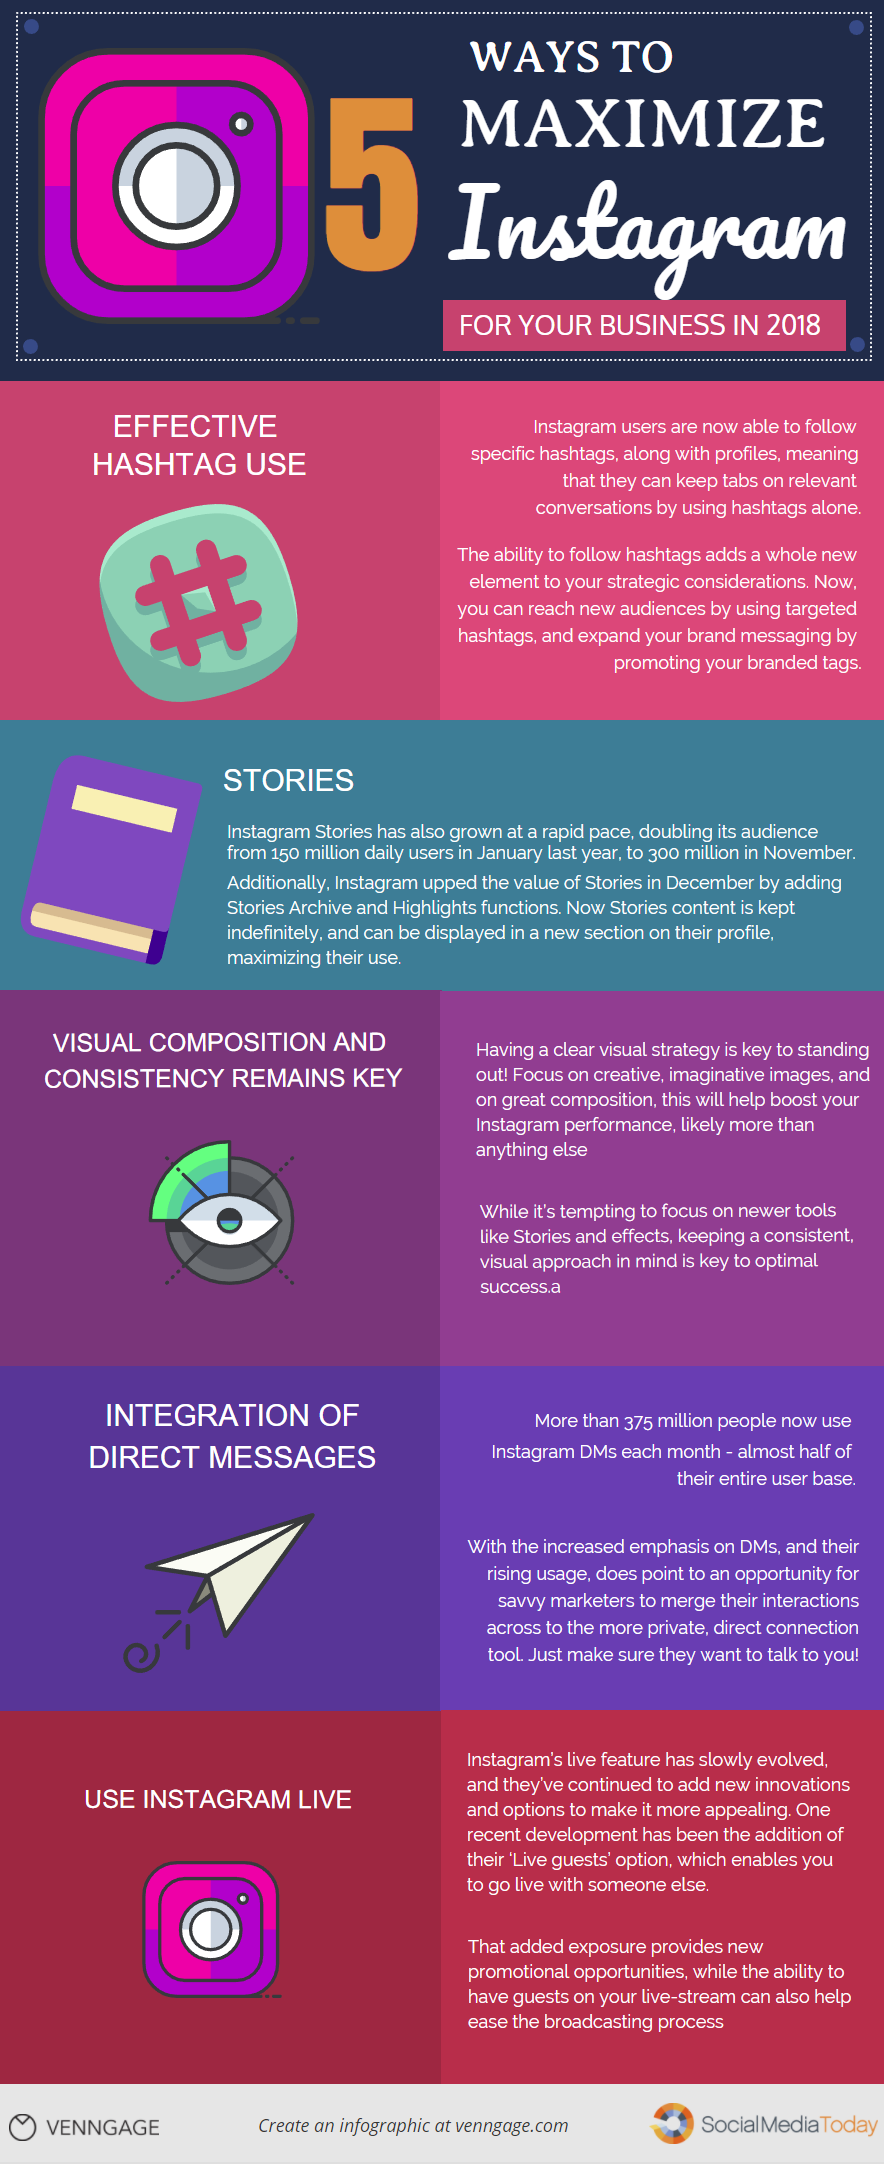 5 Ways to Maximize Instagram for Your Business in 2018 #Infographic